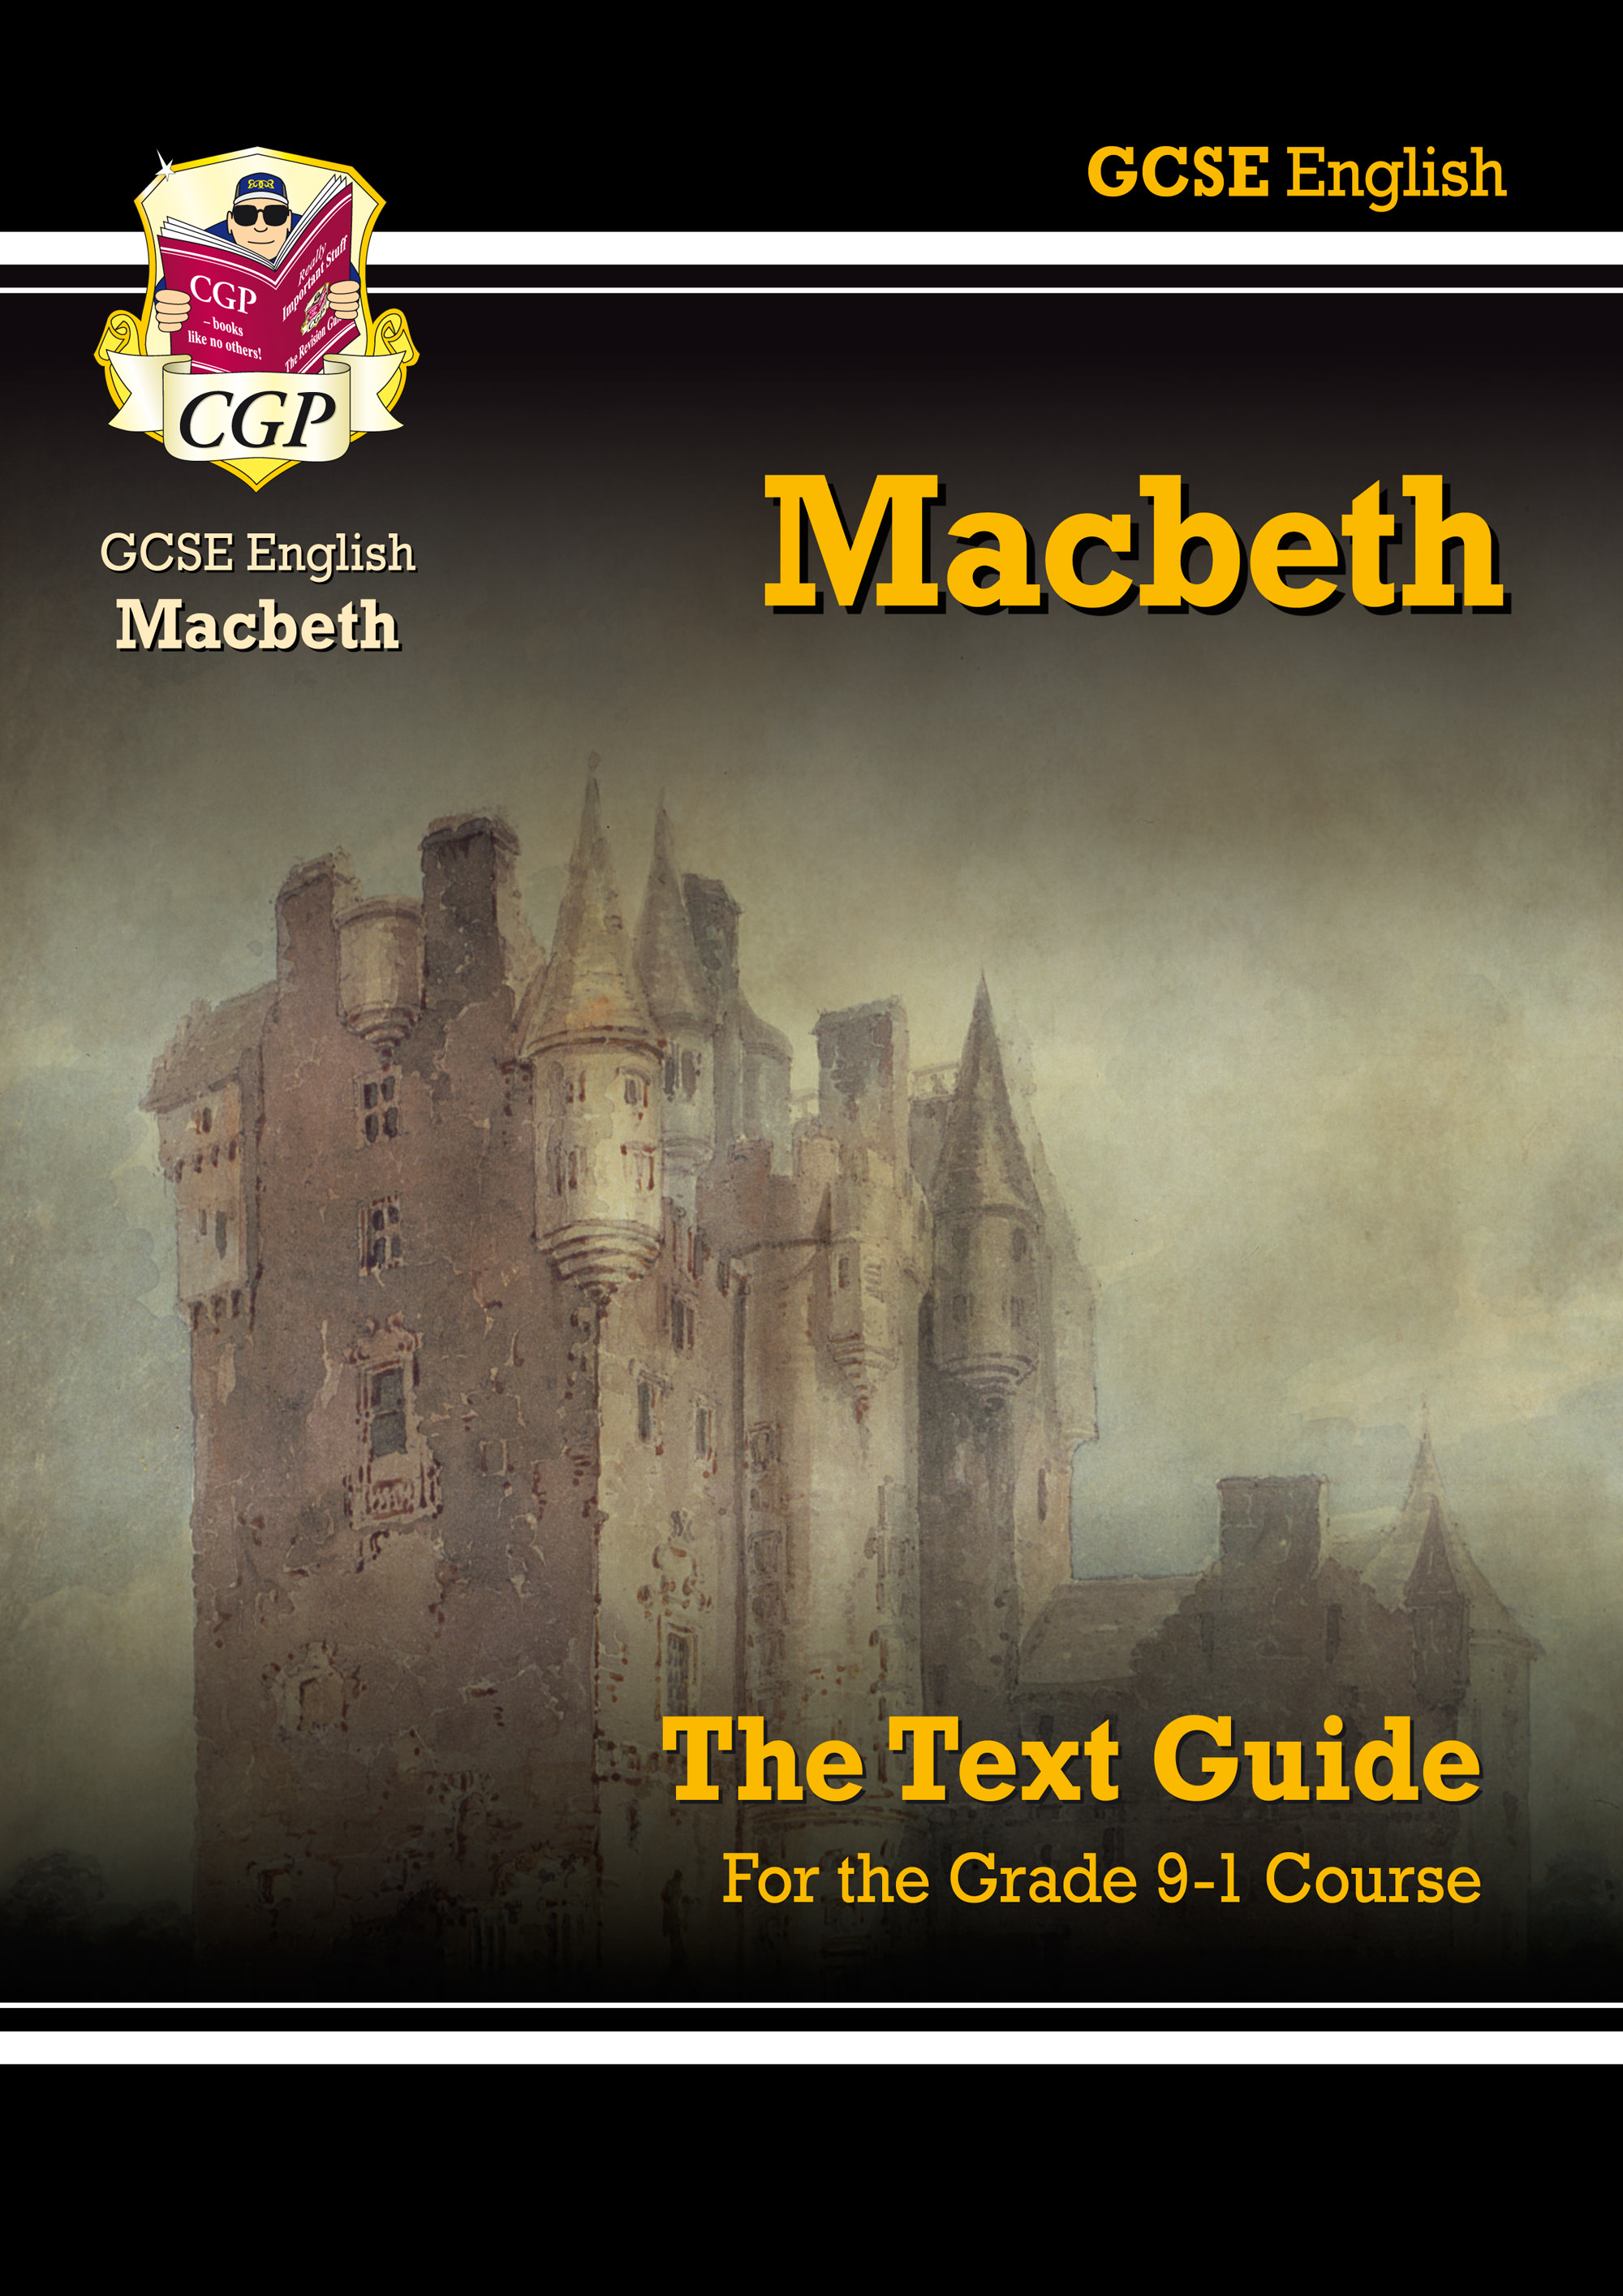 ETM43 - Grade 9-1 GCSE English Shakespeare Text Guide - Macbeth